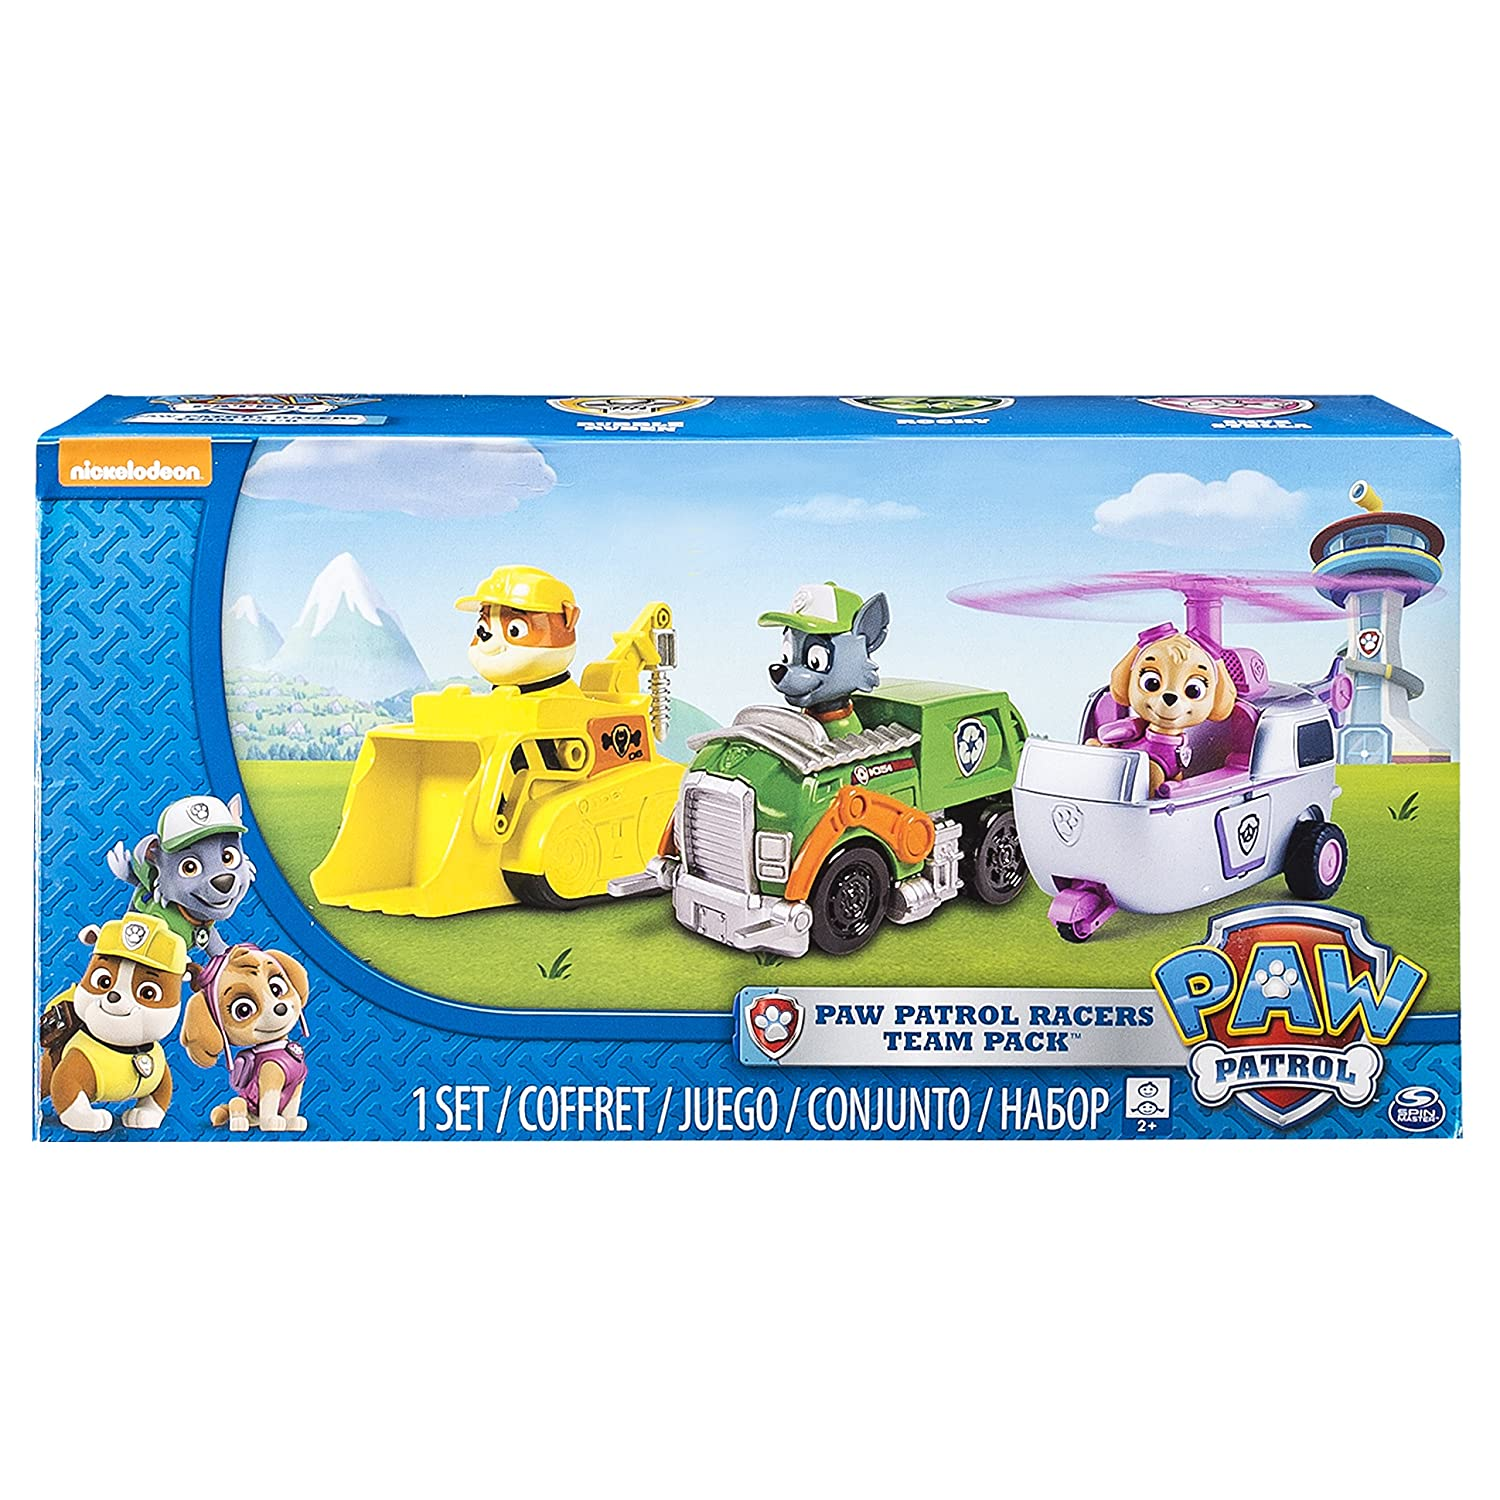 Paw Patrol Racers 3-Pack Vehicle Set, Rubble/Rocky/Skye 6026092